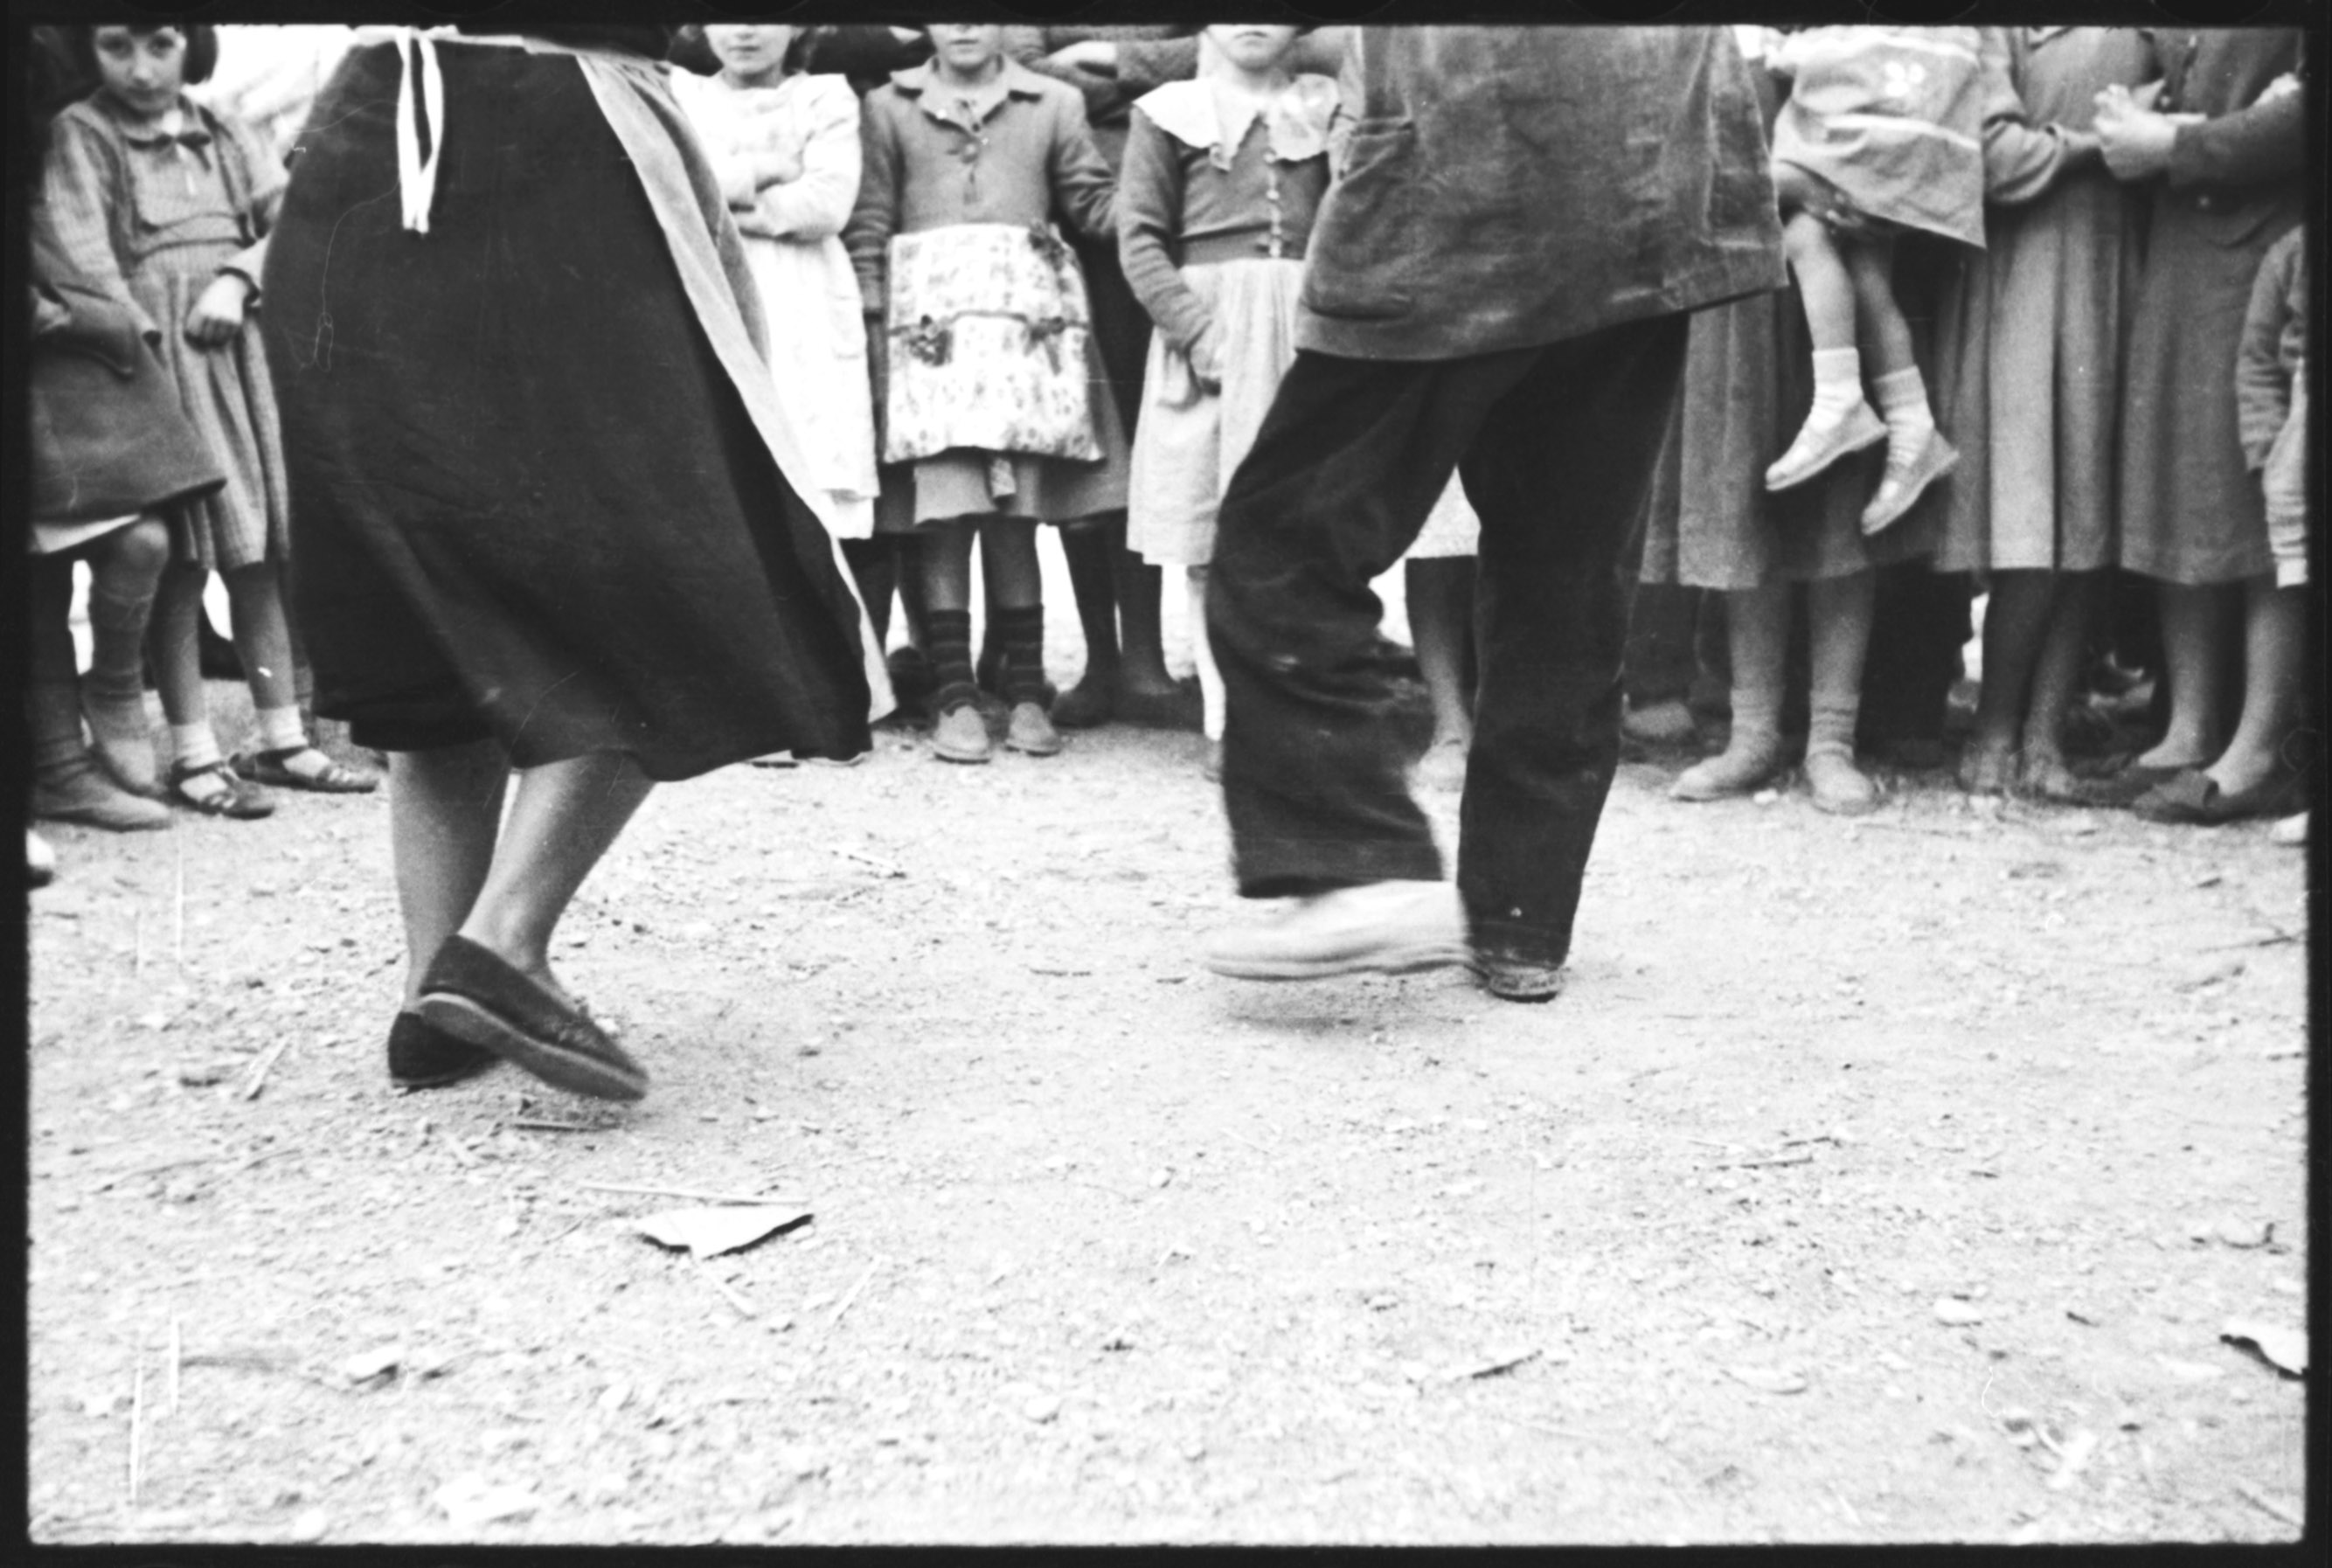 """Sevillana dancers in town square,"" From the Alan Lomax Collection at the American Folklife Center, Library of Congress. Used courtesy of the Association for Cultural Equity."